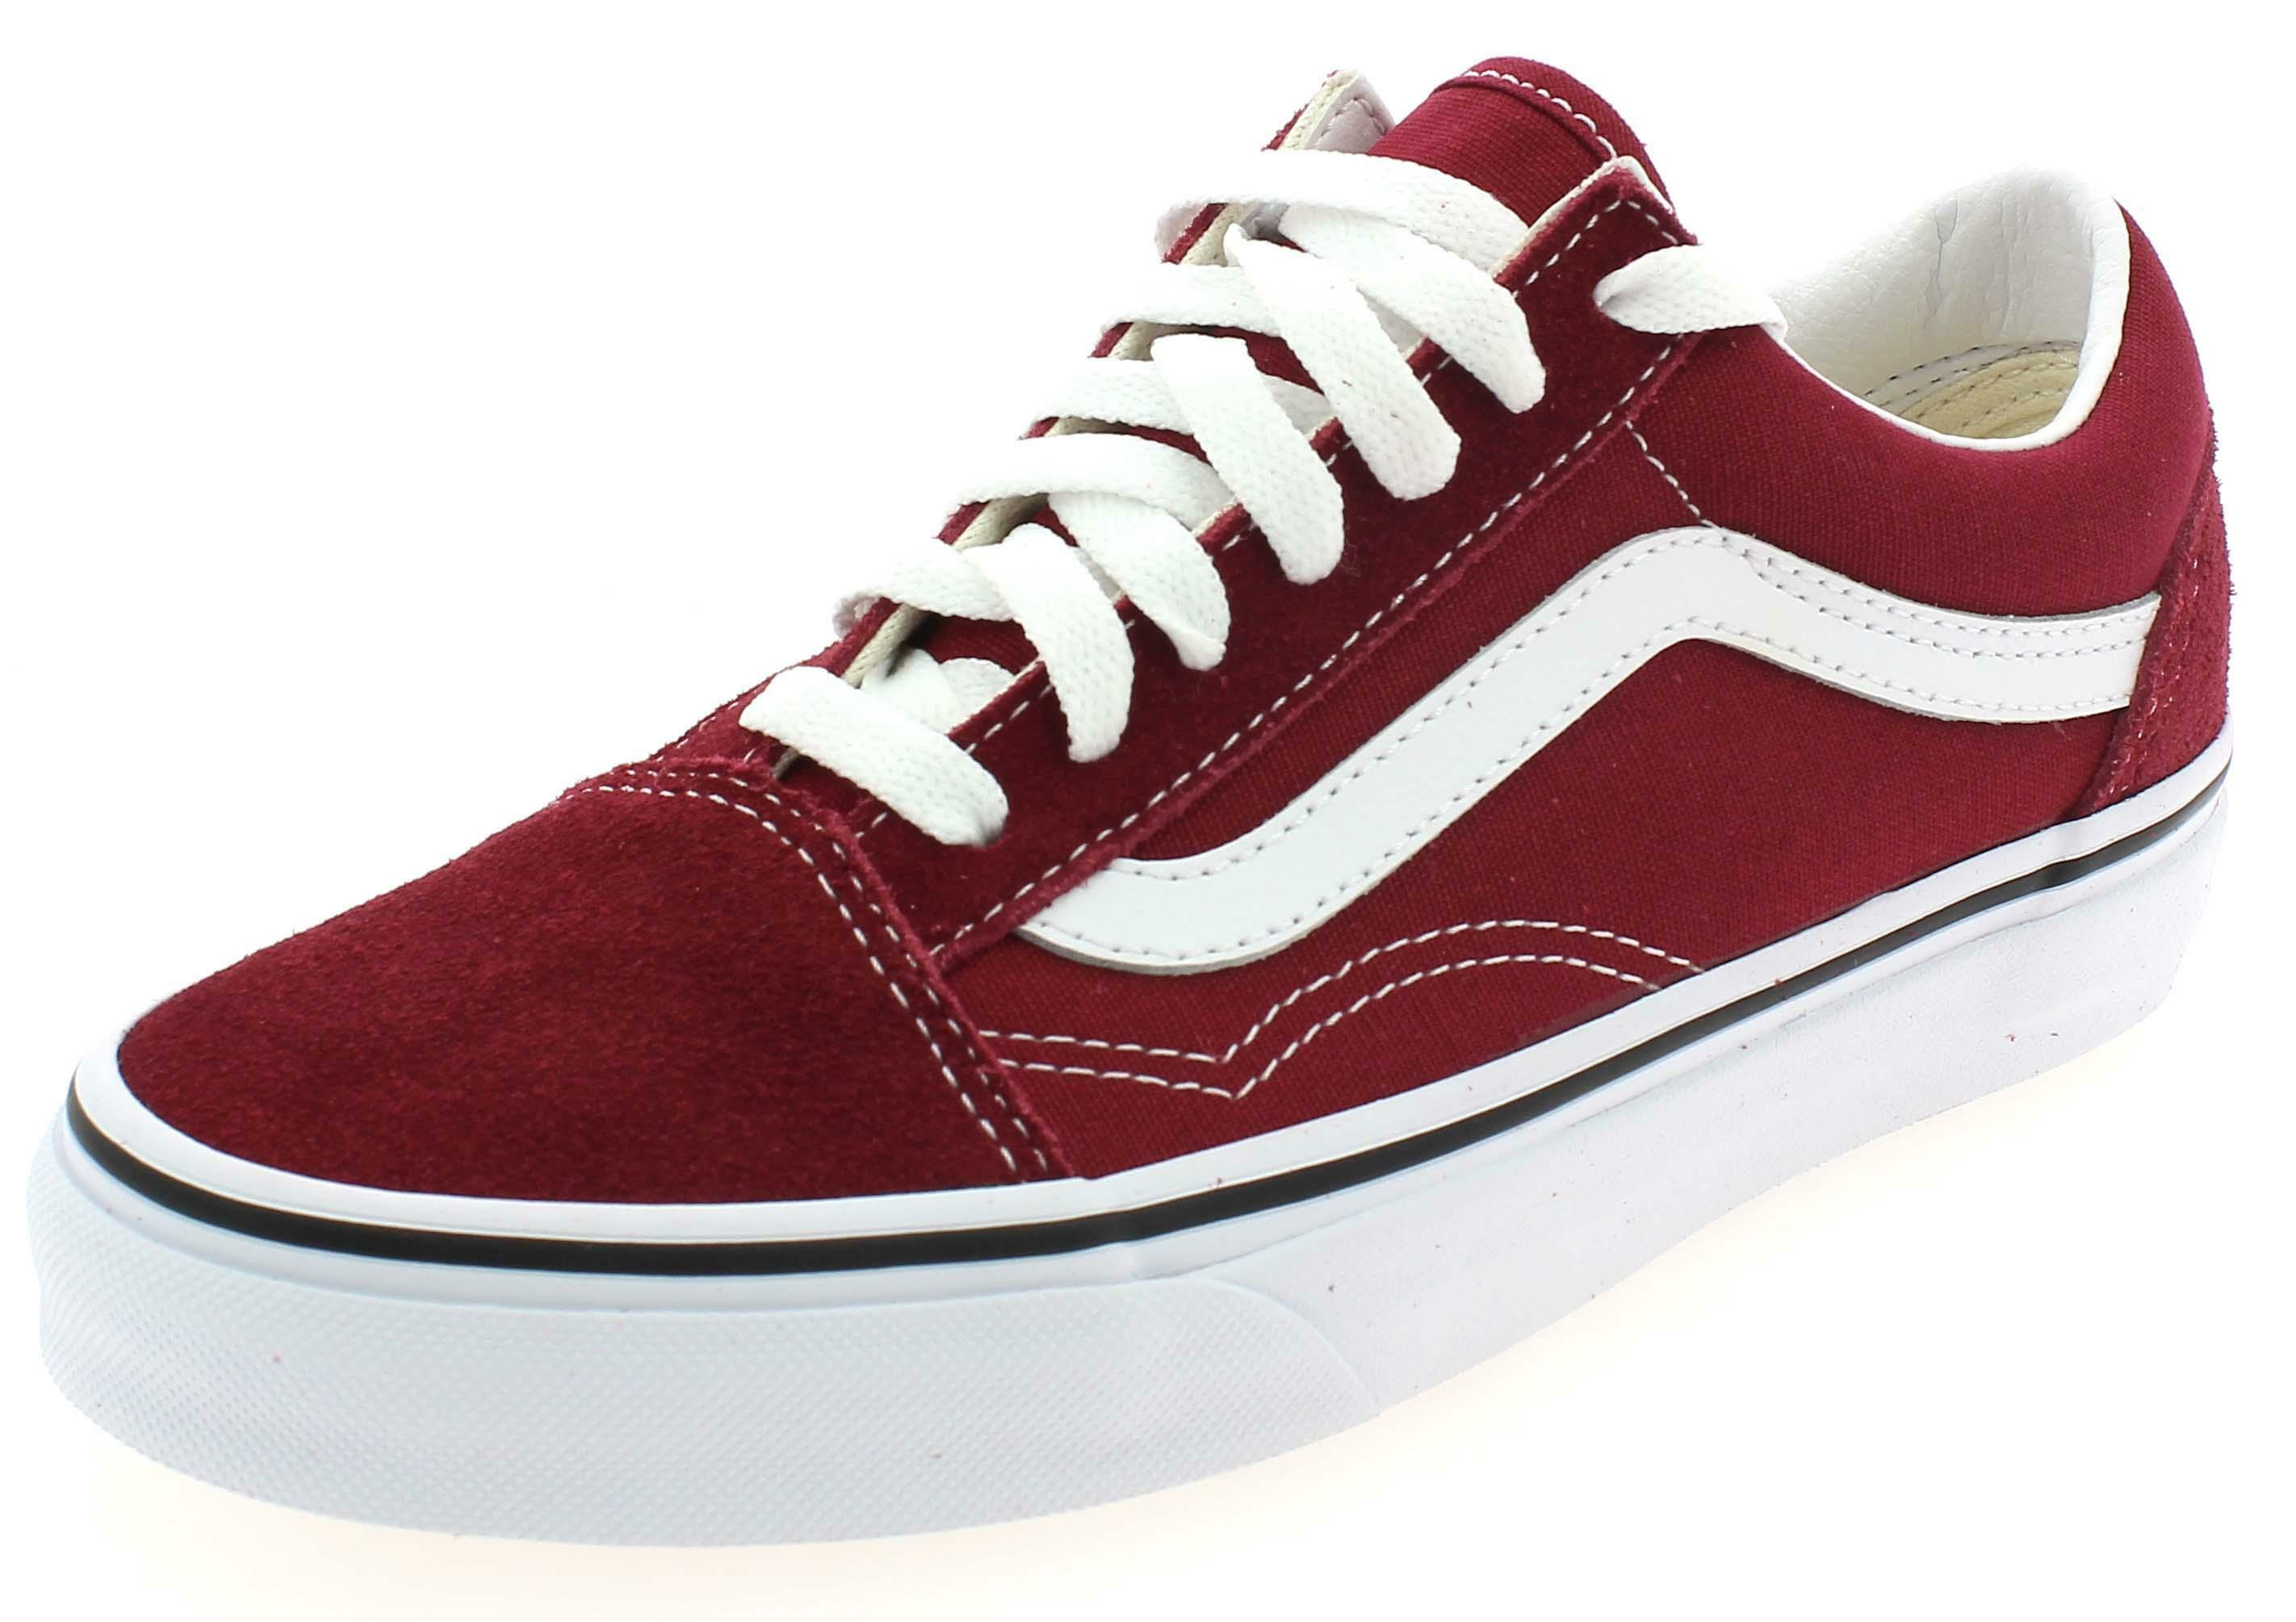 VANS OLD SKOOL WOMAN'S BURGUNDY SPORTSHOES VN0A38G1VG41